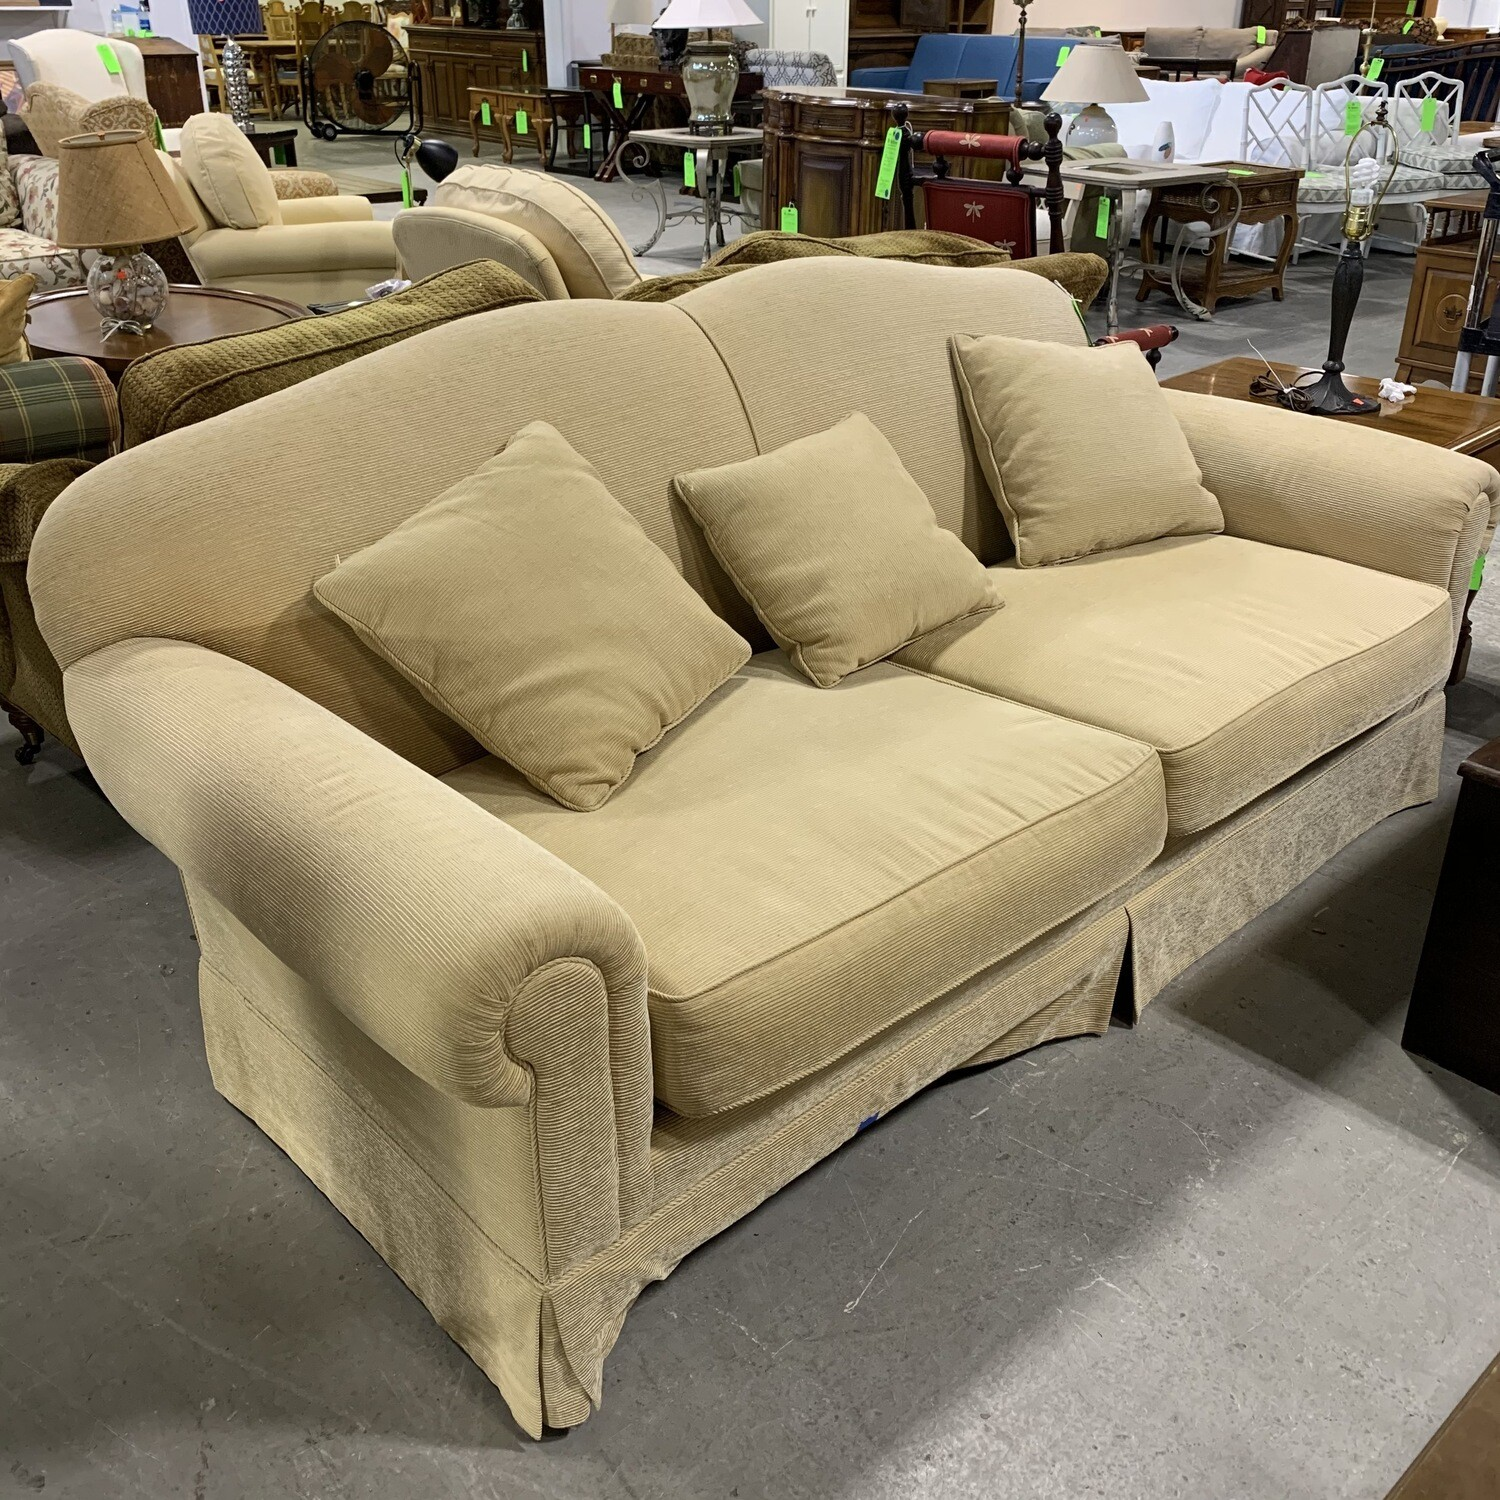 Tan Upholstered Long Couch